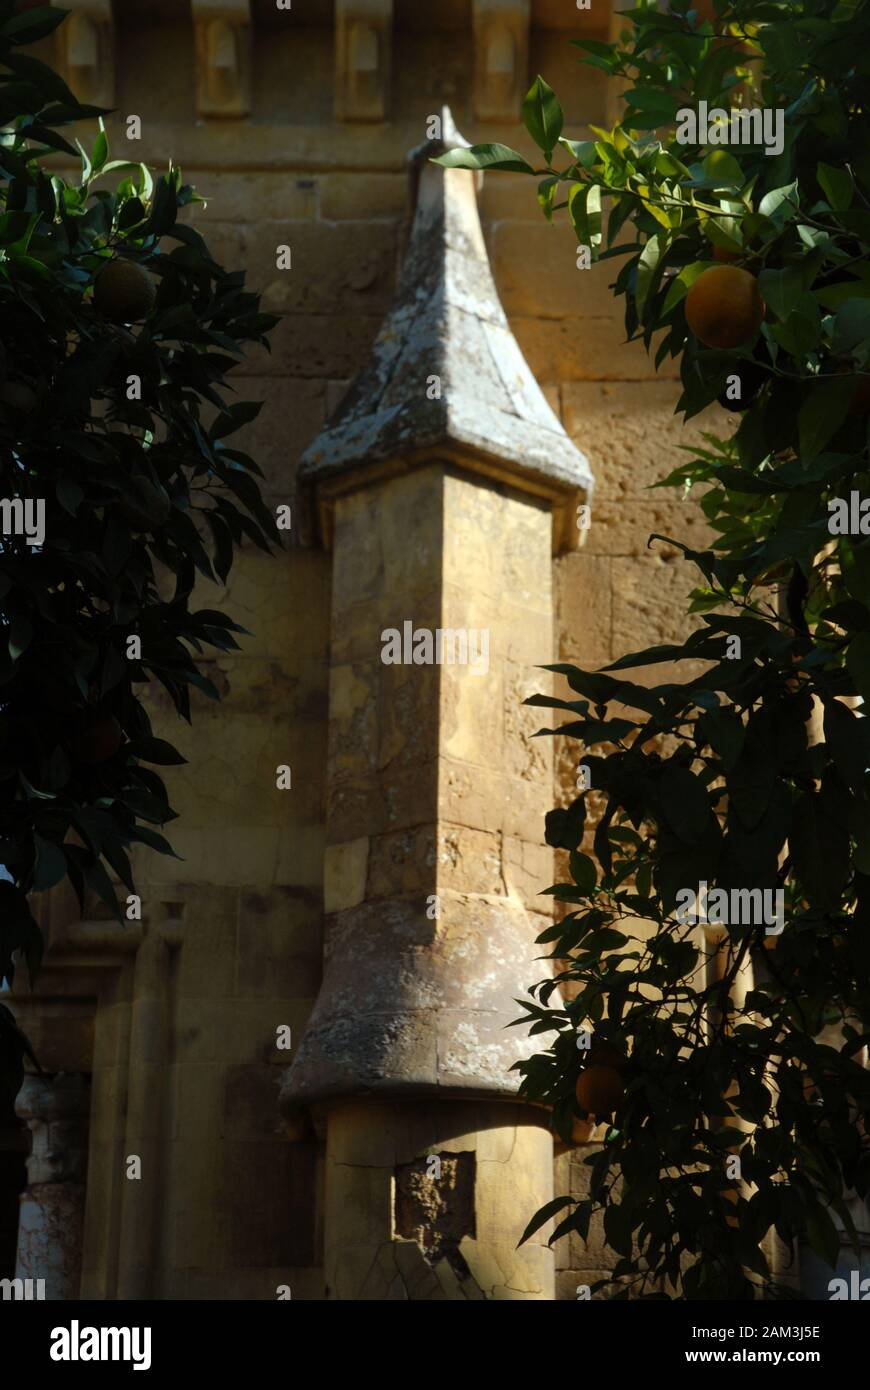 Courtyard of the Orange Trees of the Great Mosque of Cordoba, Spain Stock Photo